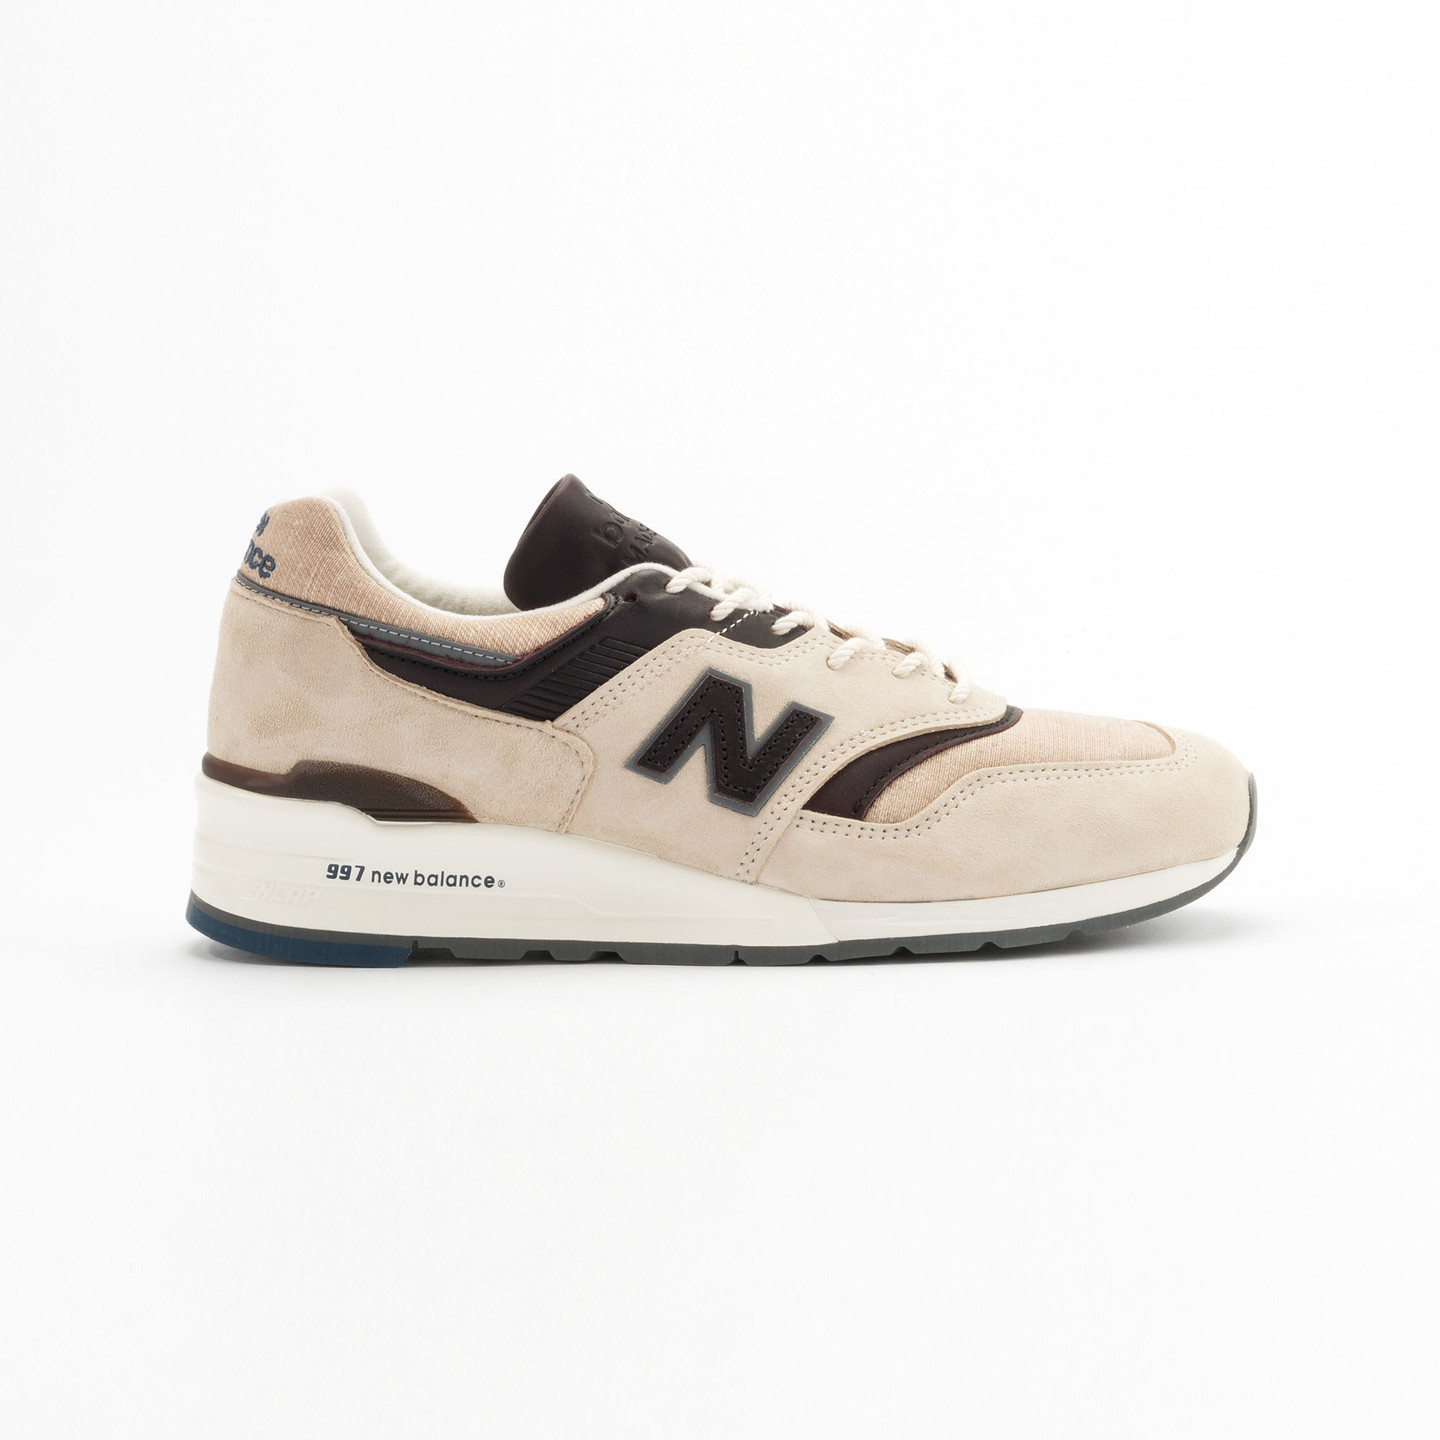 New Balance M997 DSAI - Made in USA Sand / Antique Brown M997DSAI-46.5